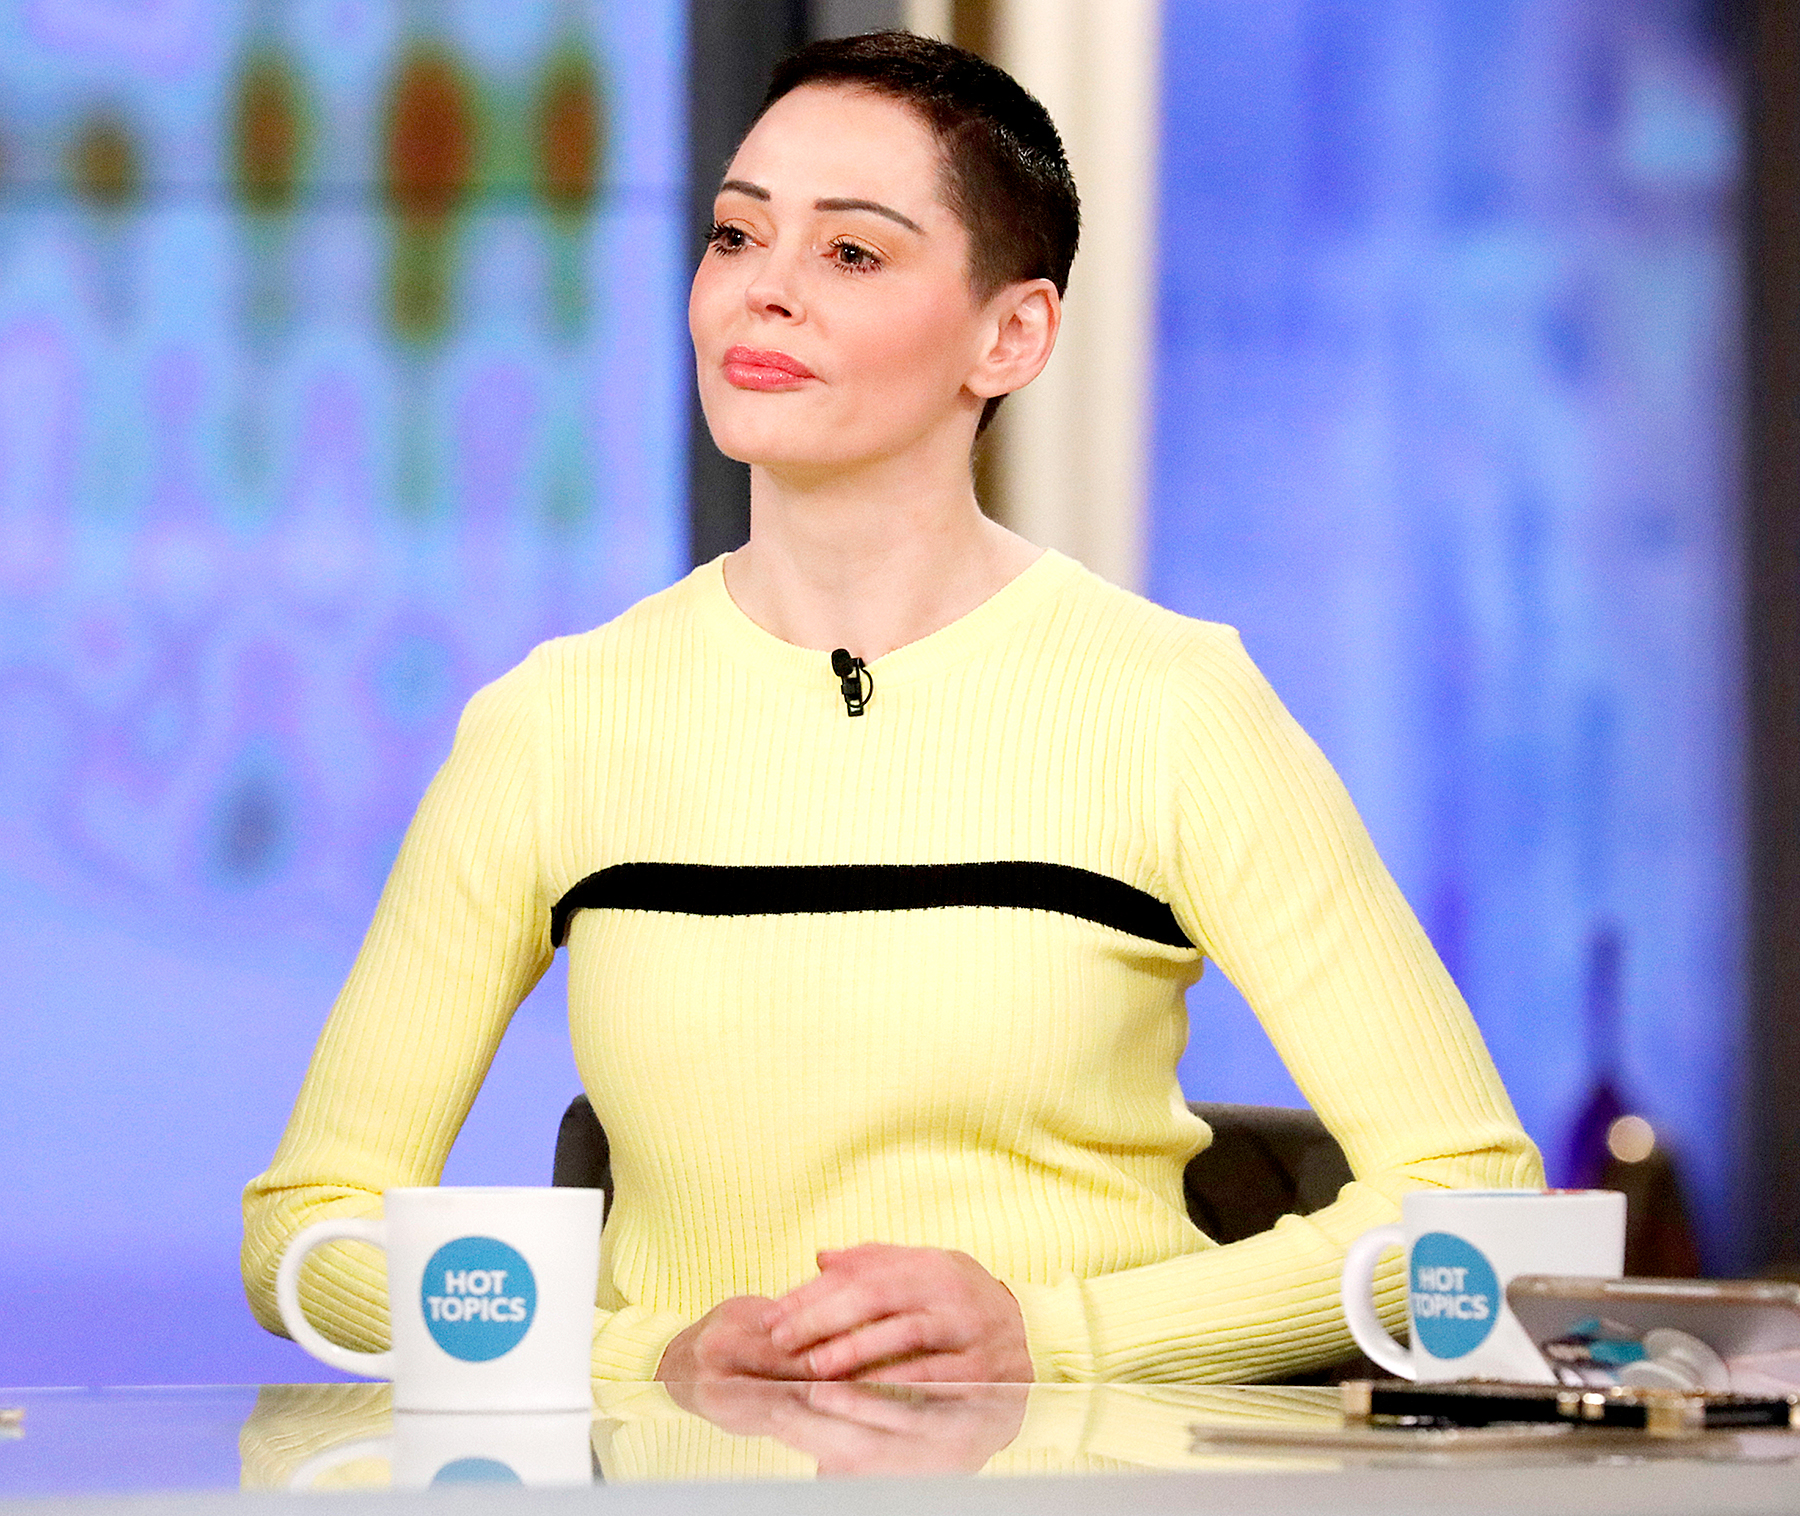 Rose McGowan Wore That Infamous VMA Dress To Protest Harvey Weinstein